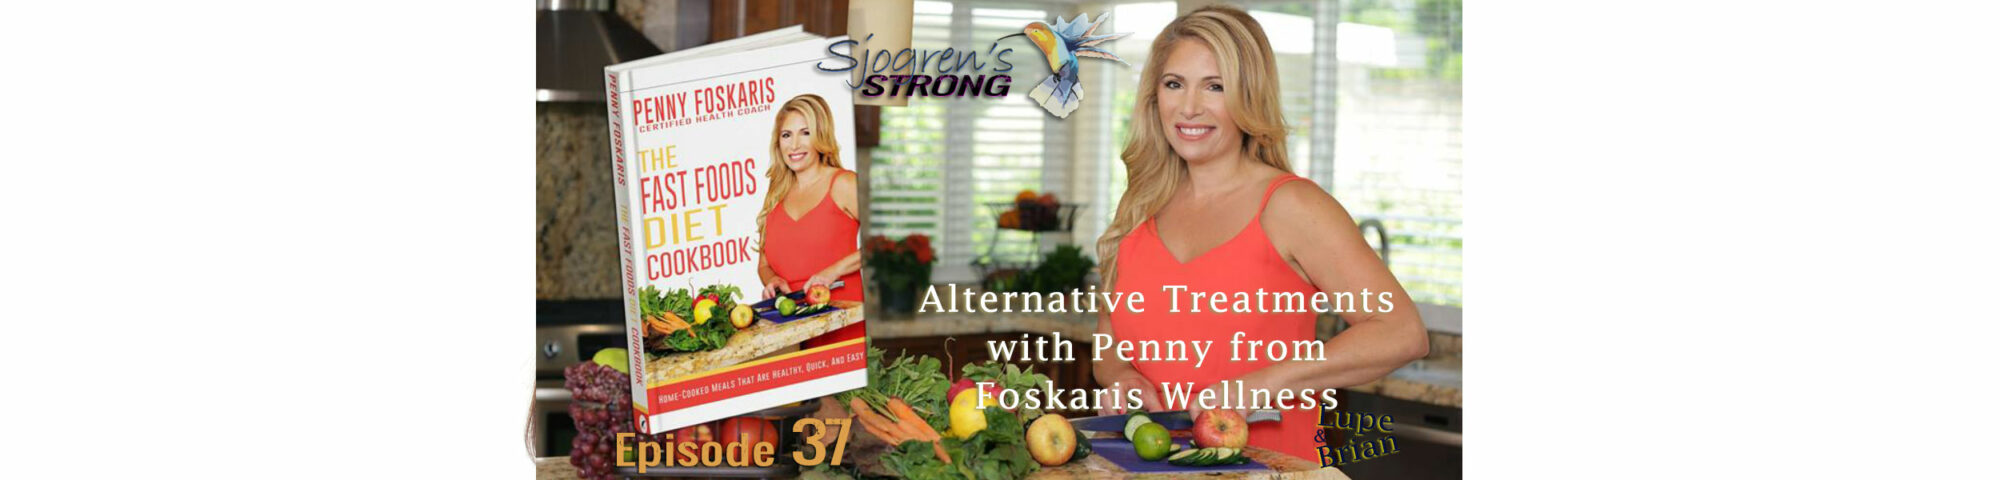 Alternative Treatments with Penny from Foskaris Wellness